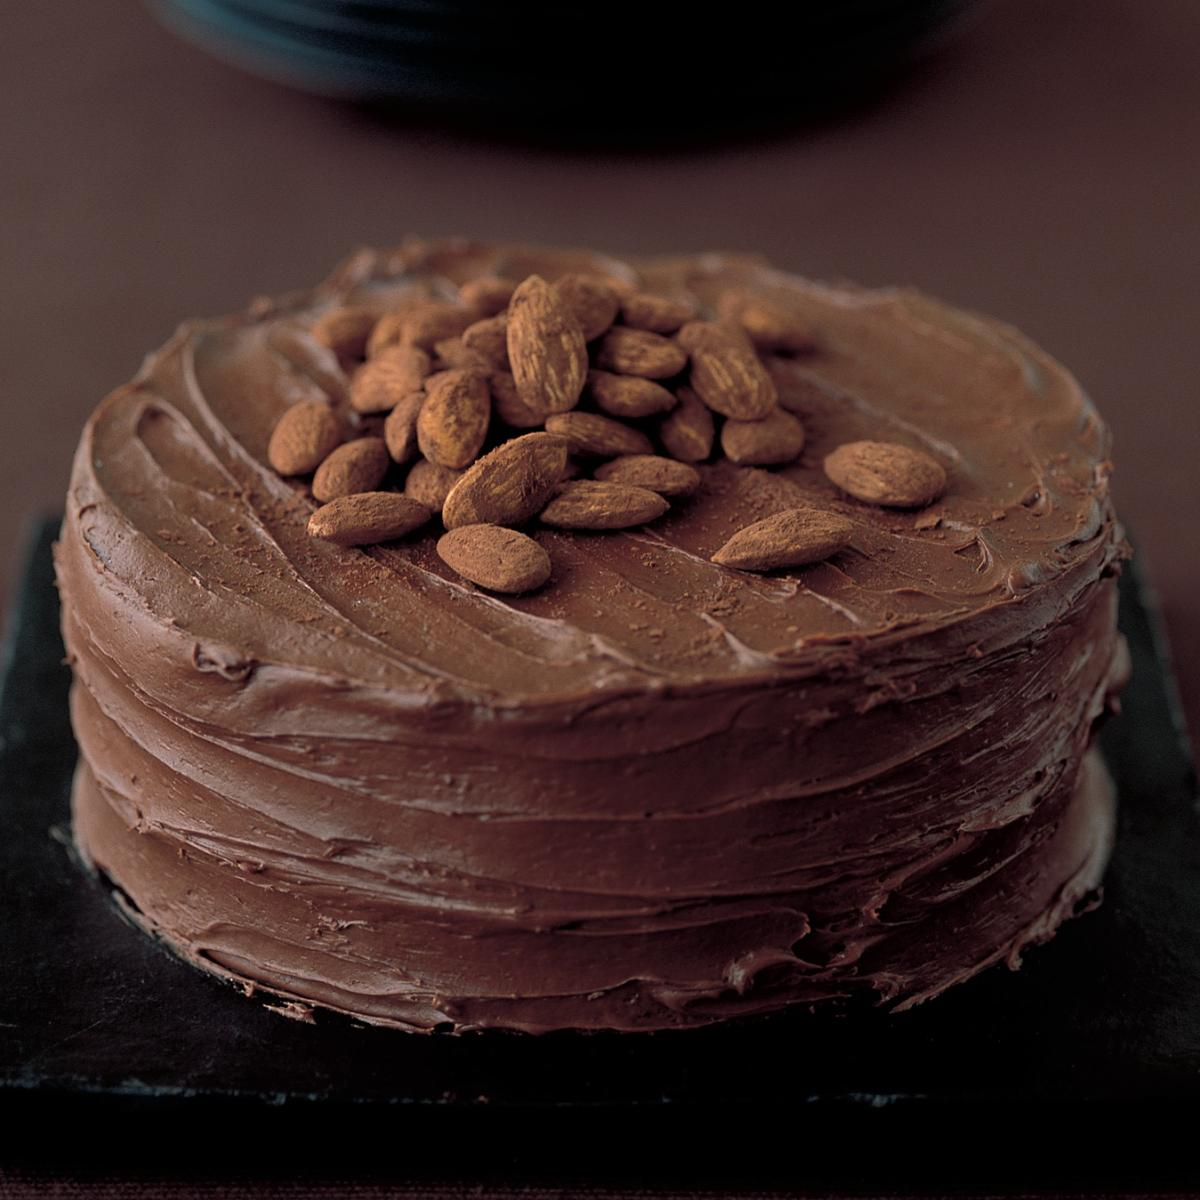 Cake Recipes With Chocolate And Peanut Butter Peanut Butter Frosting